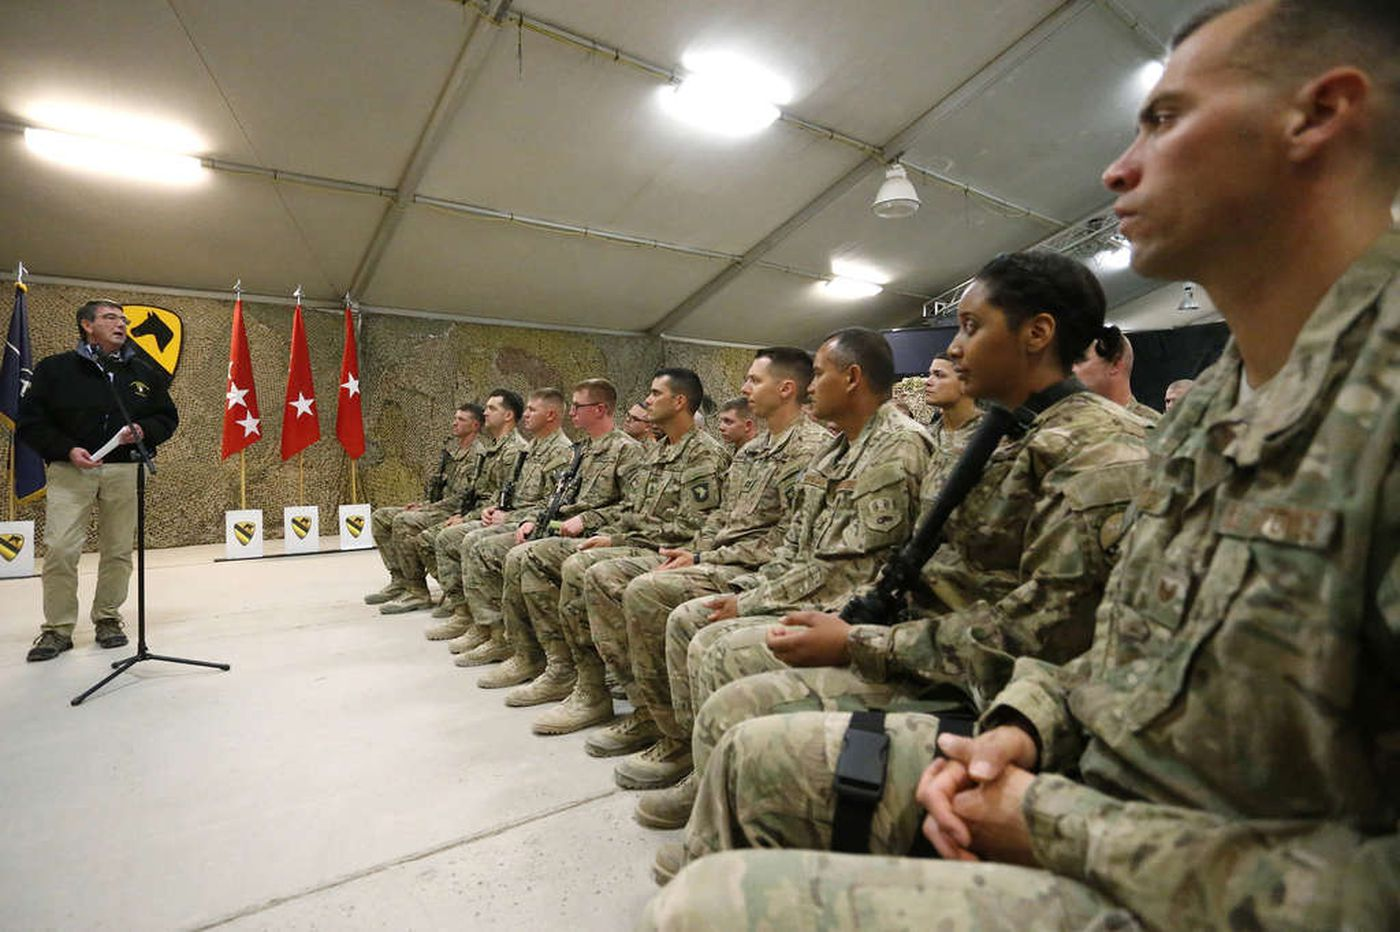 U.S. change on Afghan force?